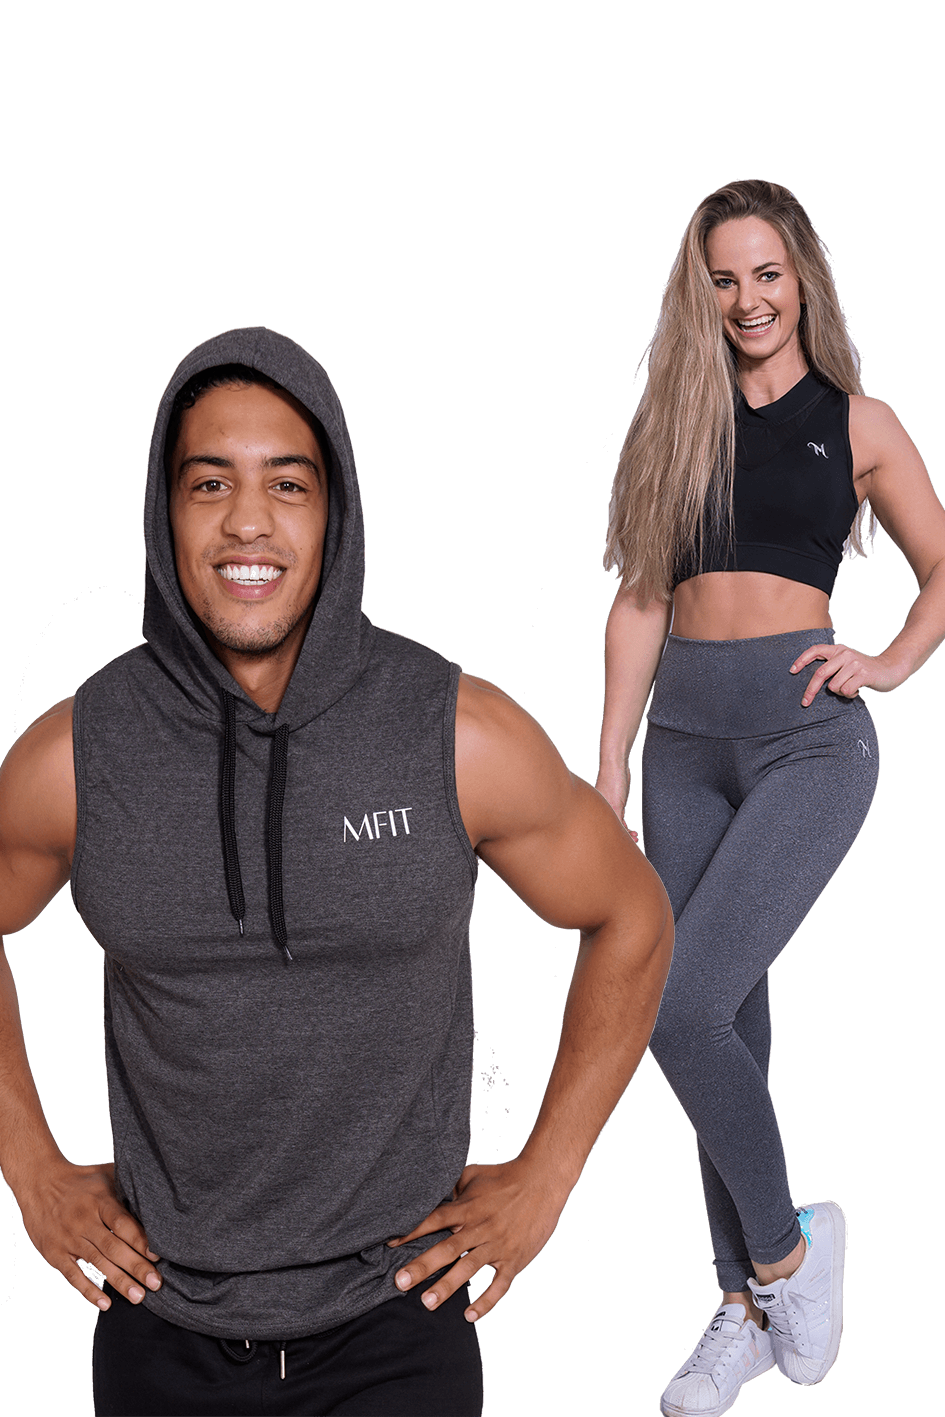 MFIT HISHERS Grey Set